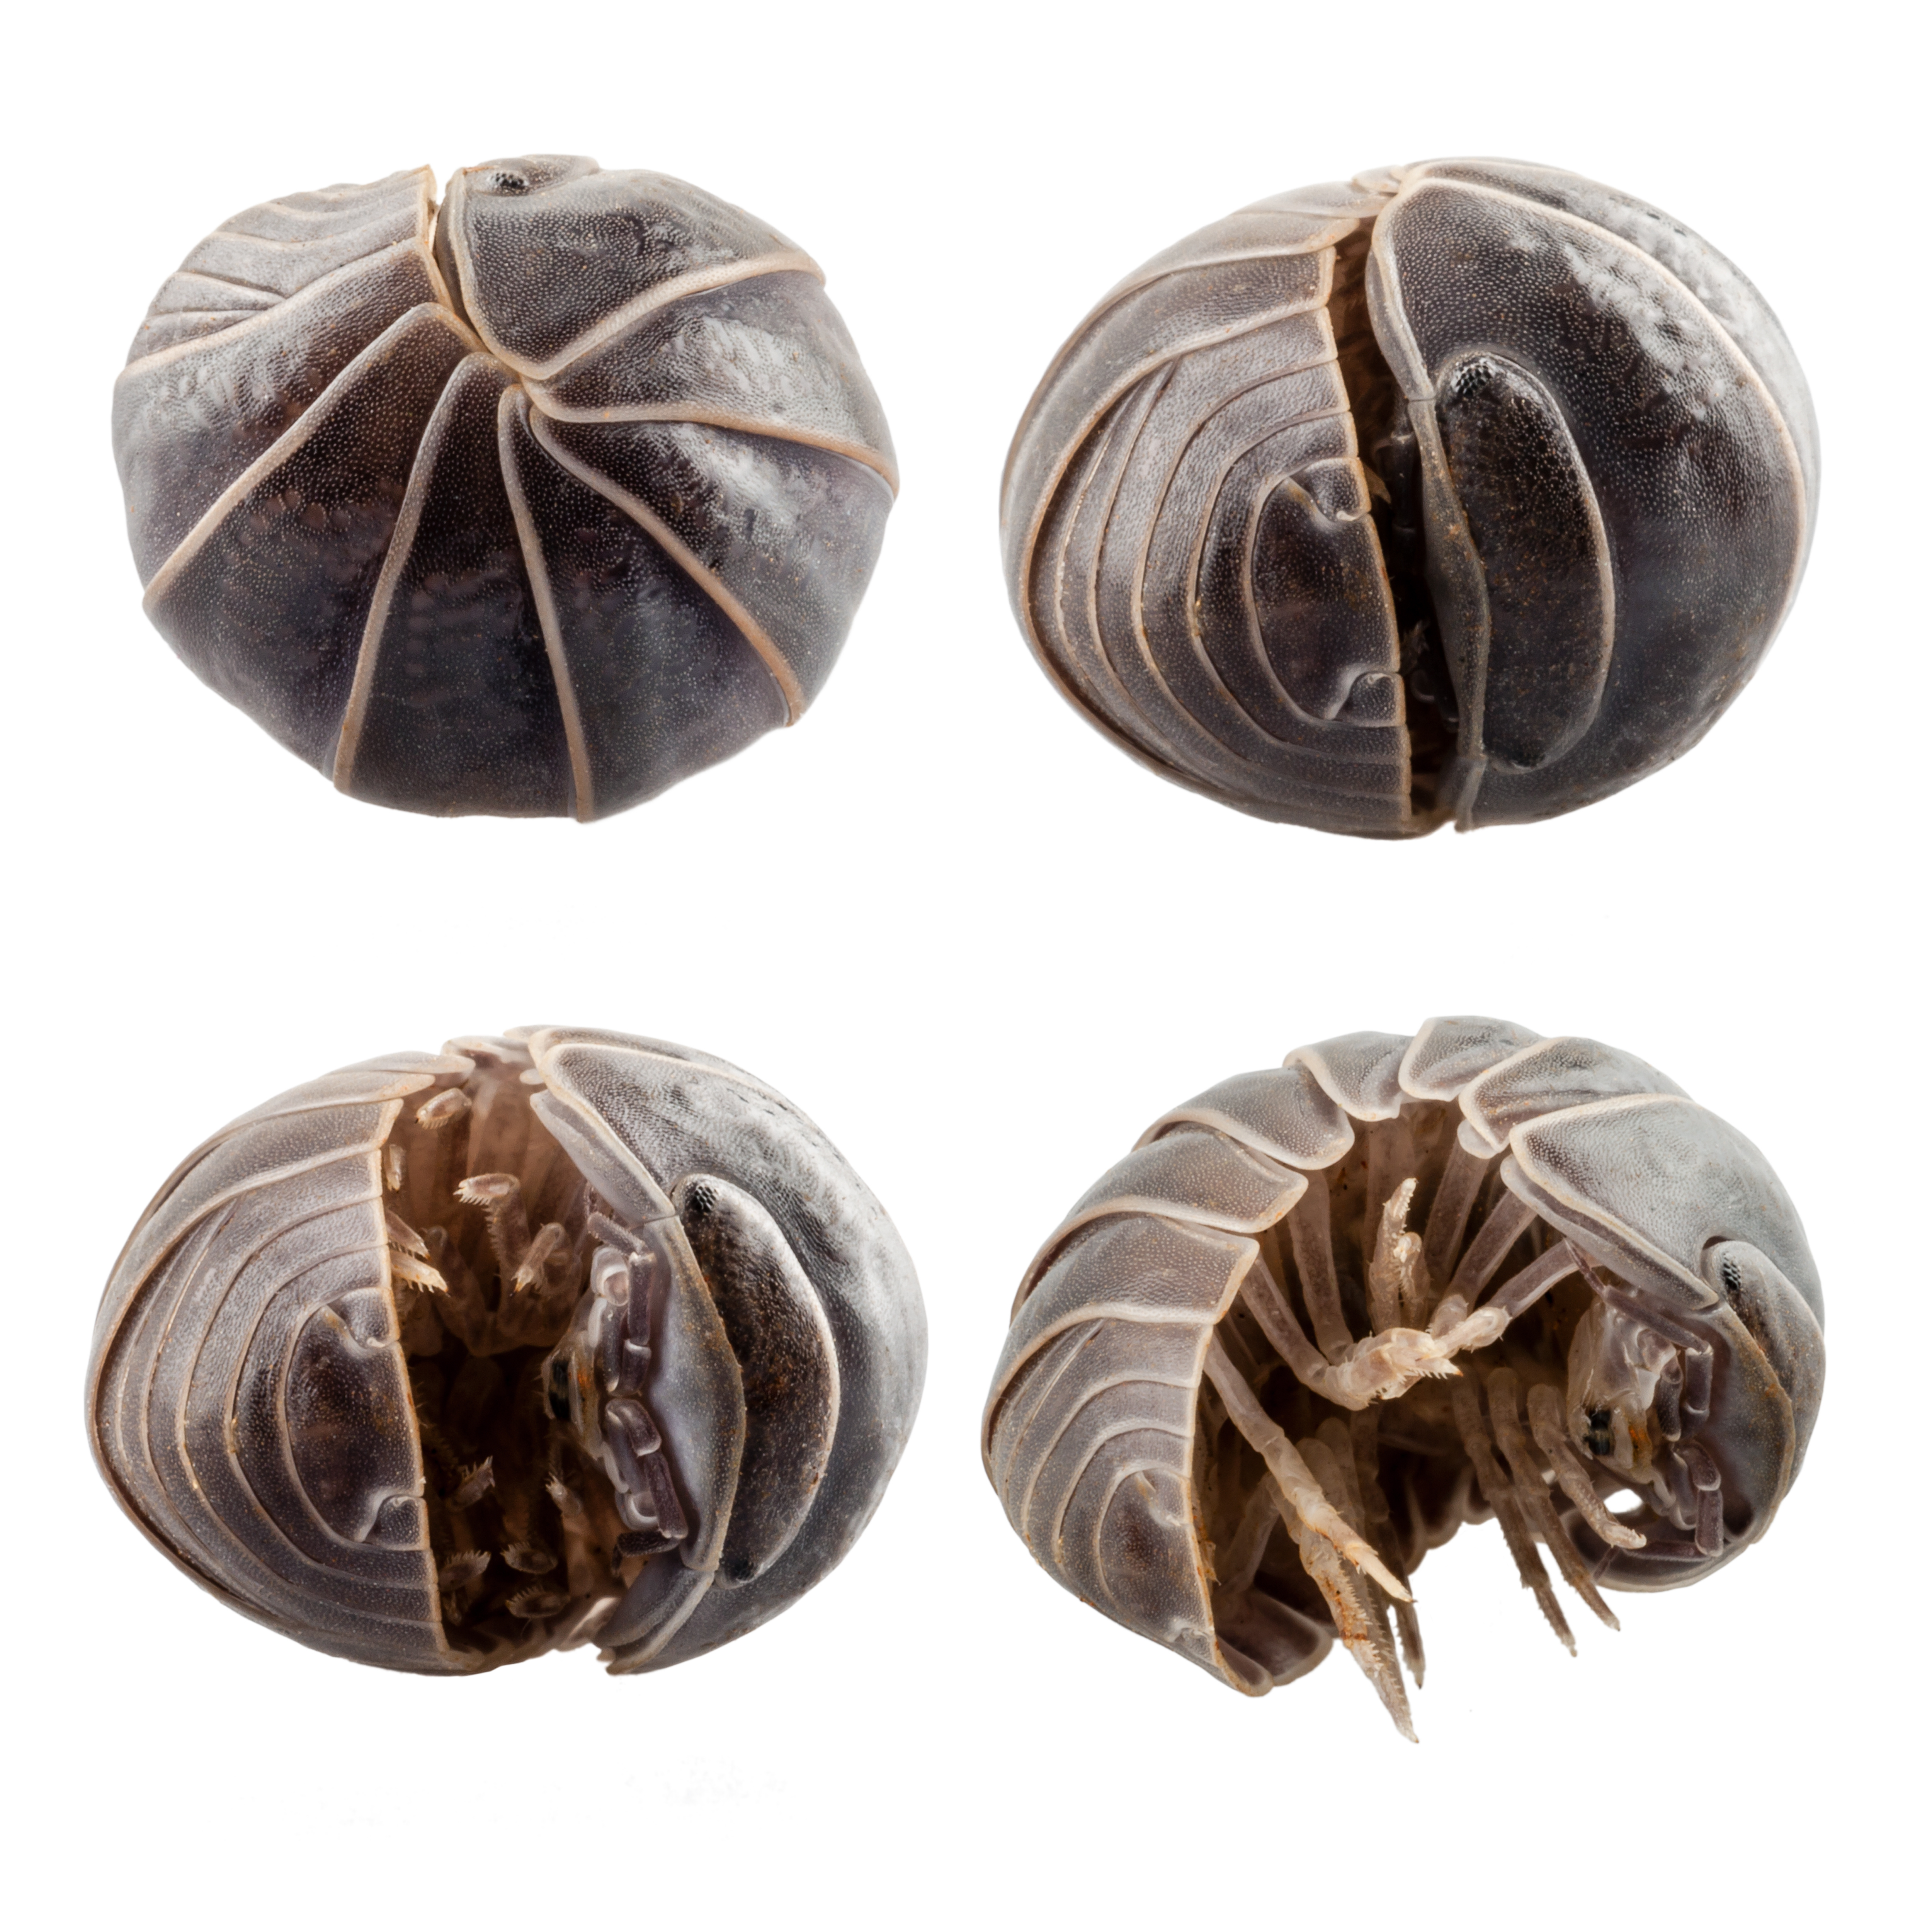 Pill Bugs Or Sow Bug Infestations And Pill Bug Problems